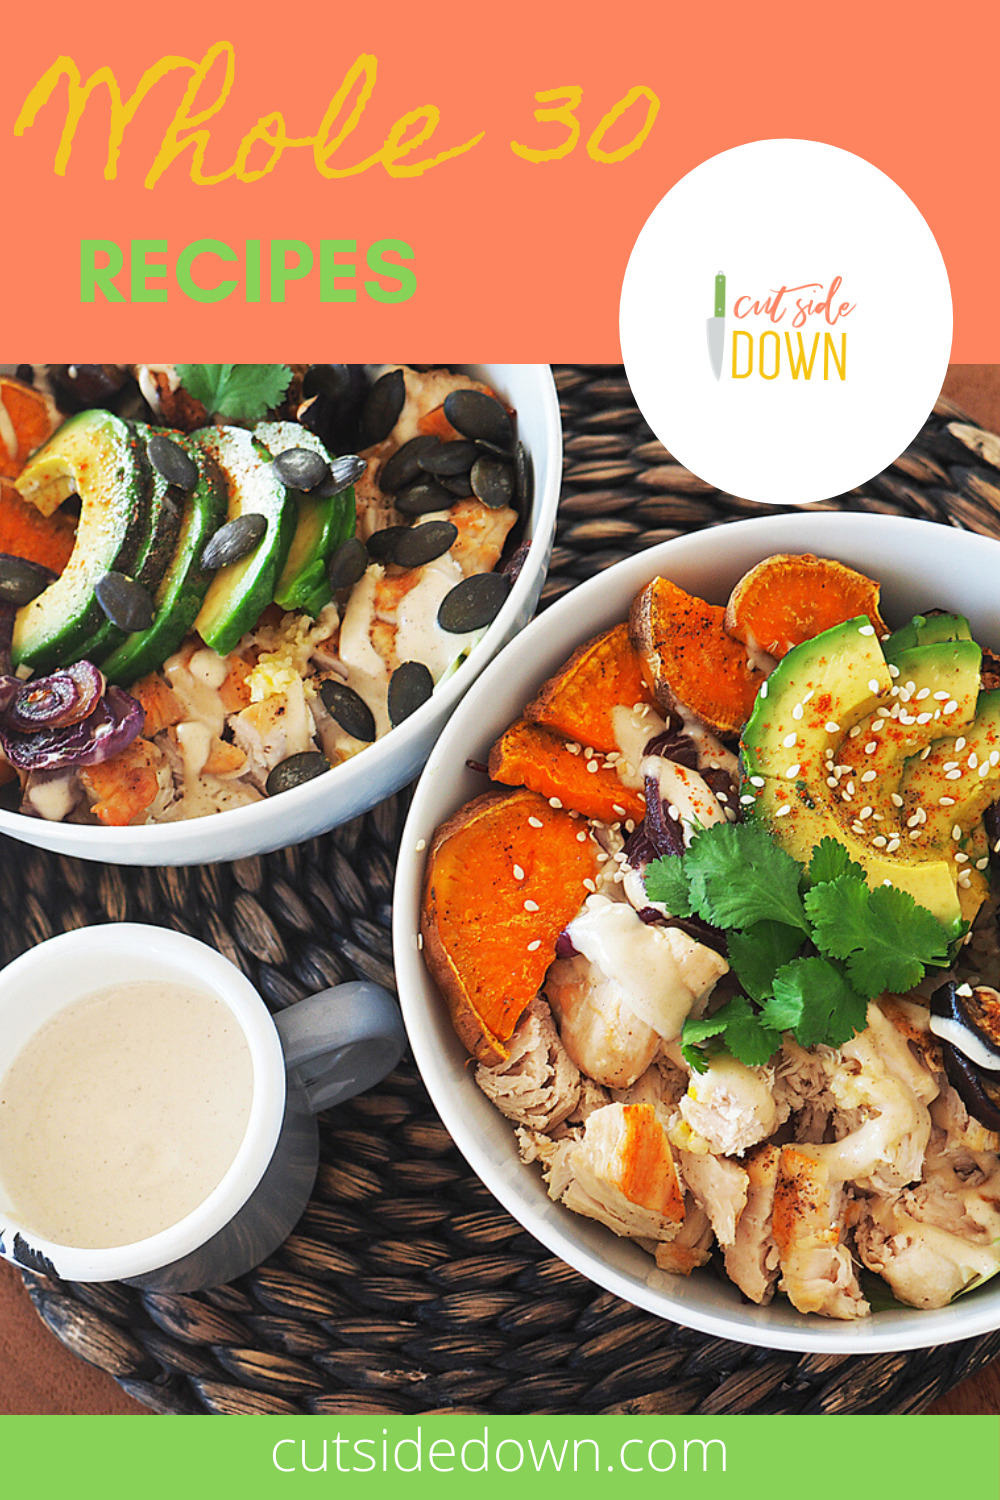 You've been living under a rock if you haven't heard about the Whole 30 diet. It's not just a fad. Many like it better than the Keto Diet. Read the post to discover some delicious whole 30 recipes. #whole30 #healthyrecipes #whole30 recipes